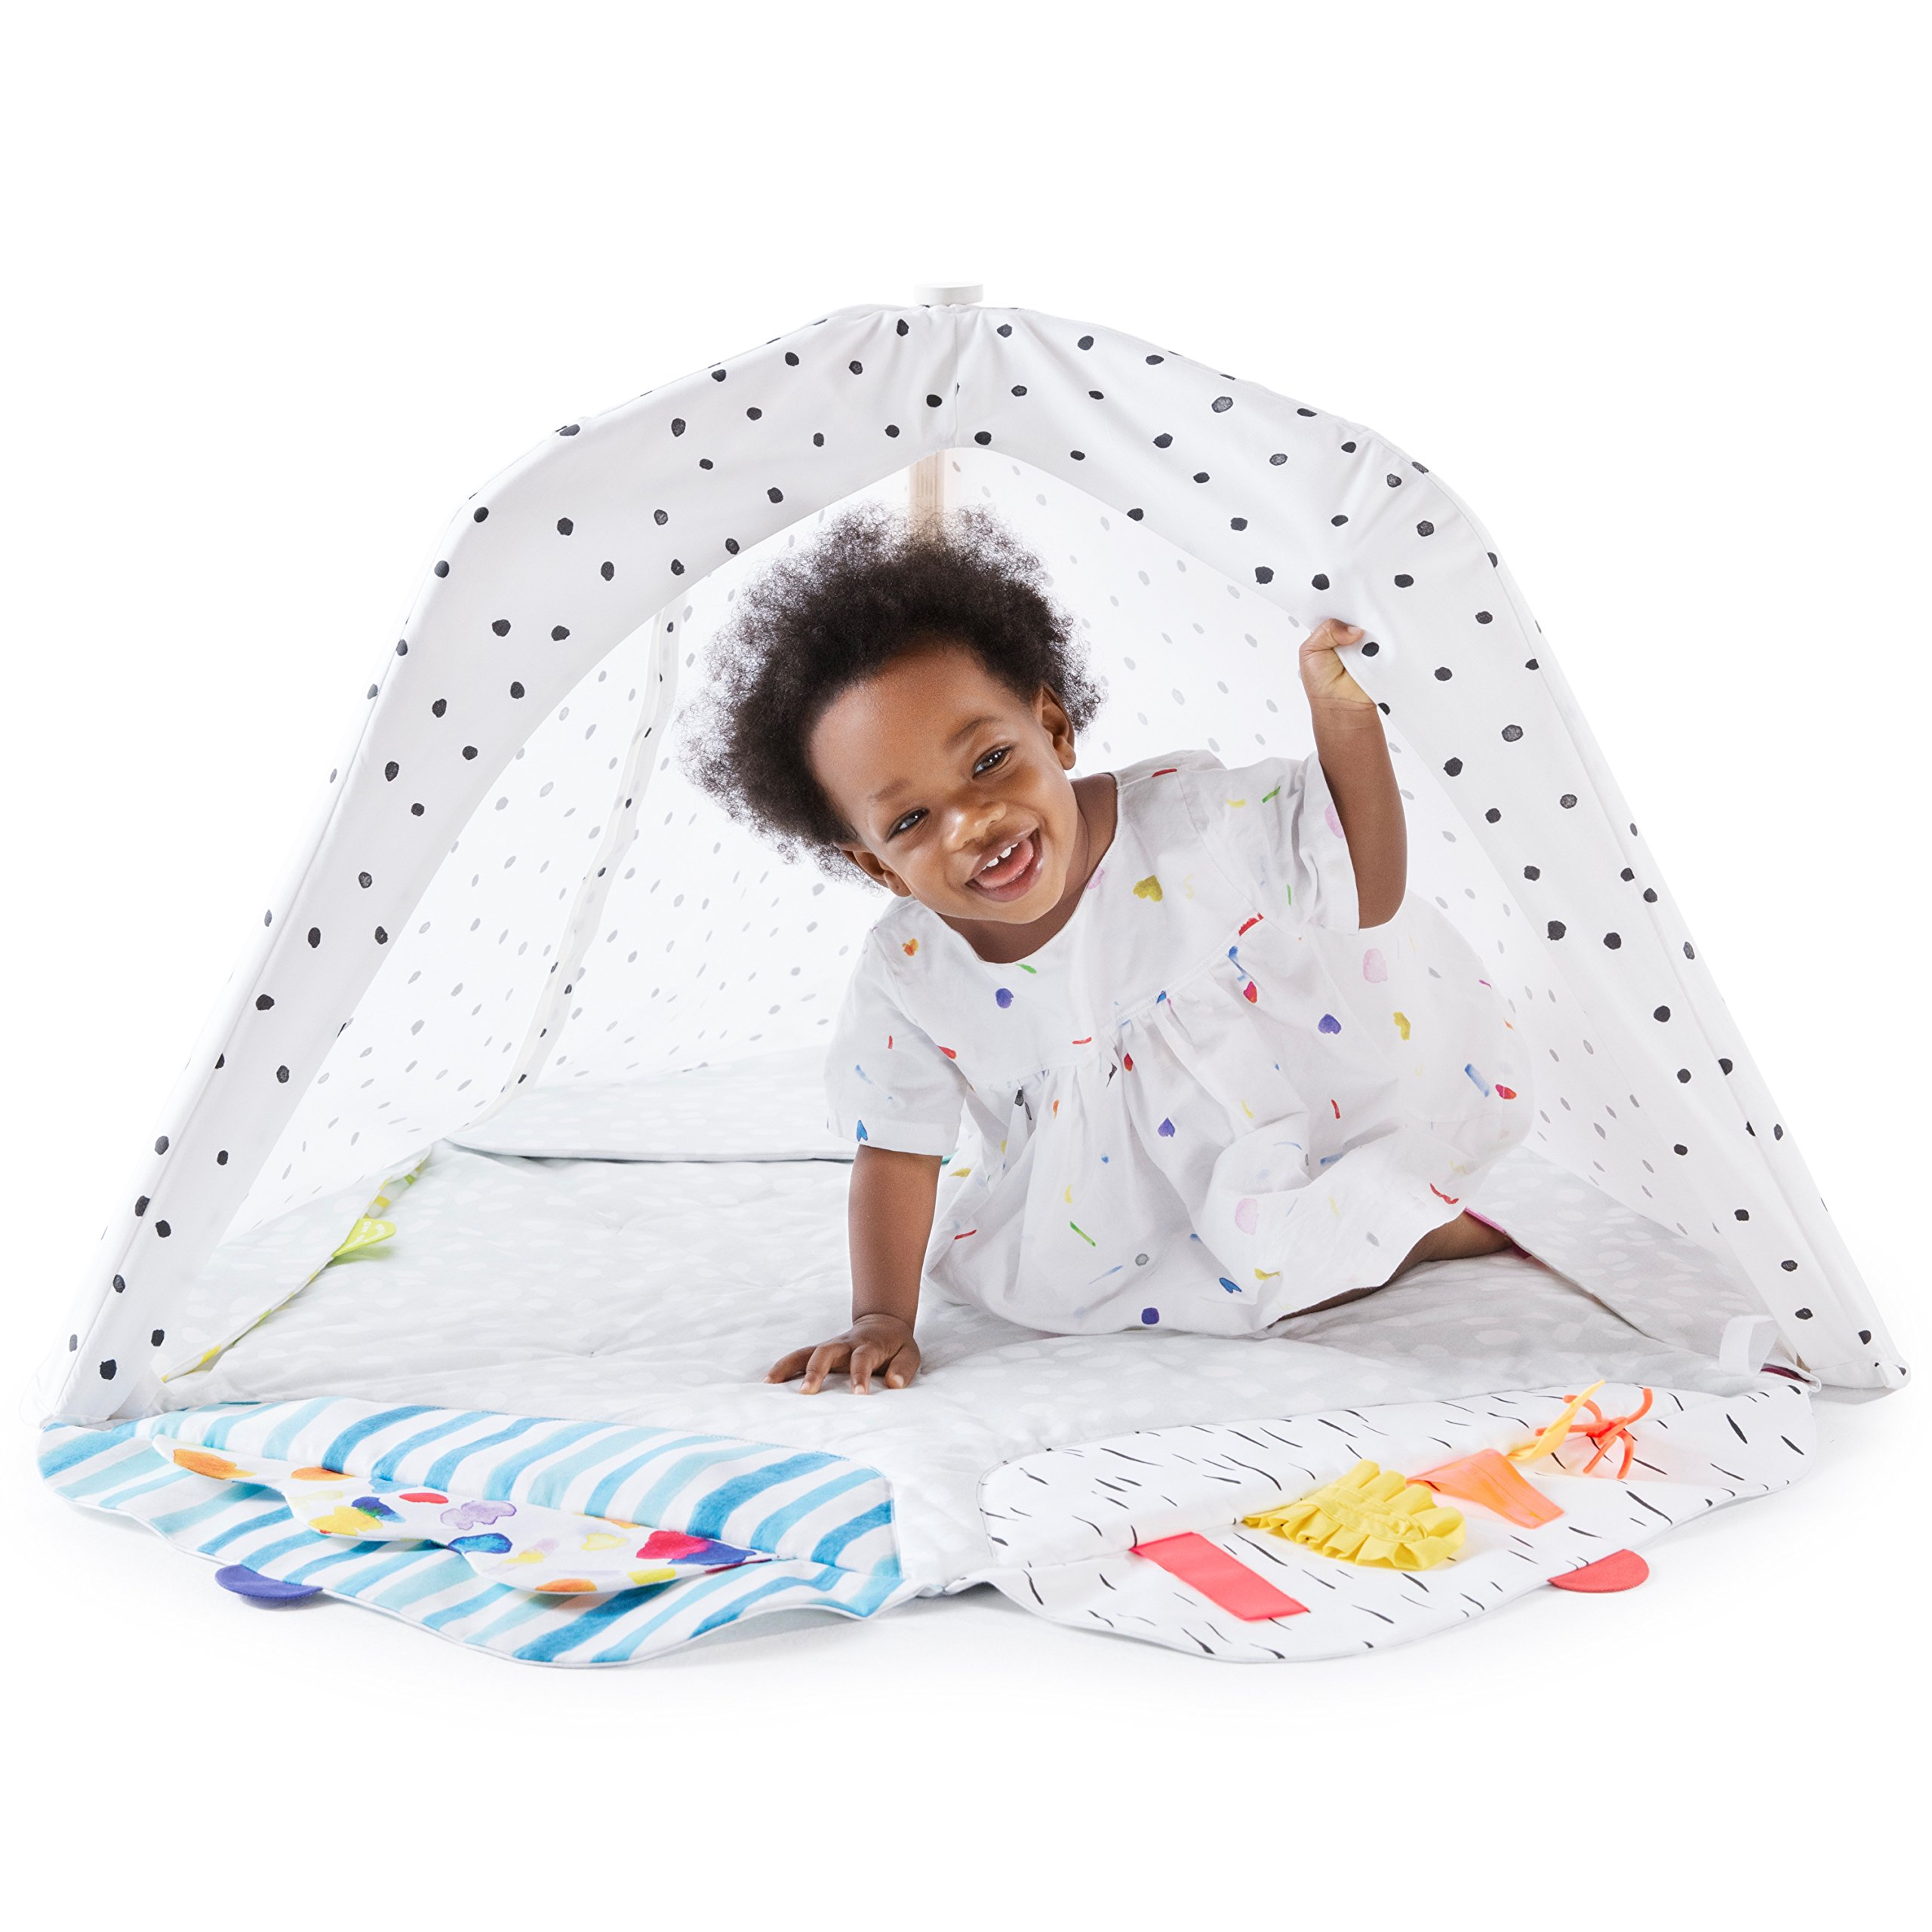 The Play Gym by Lovevery; Stage-Based Developmental Activity Gym & Play Mat for Baby to Toddler by Lovevery (Image #2)